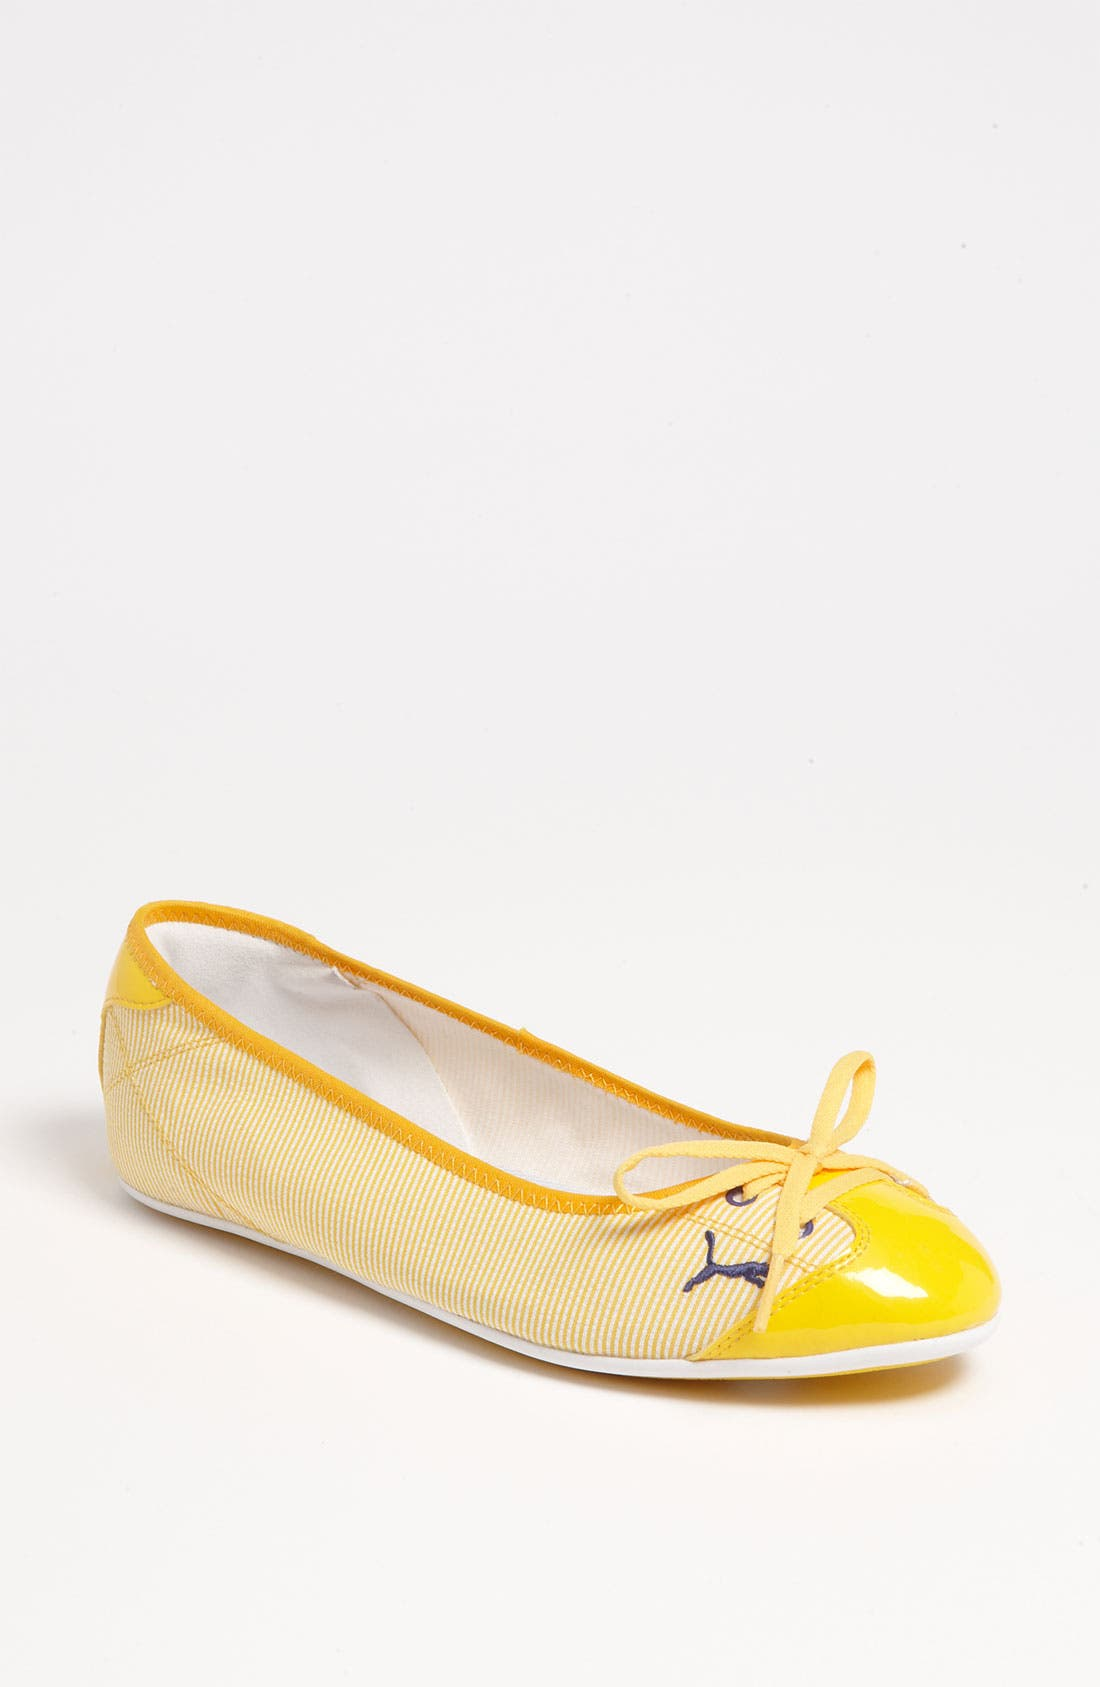 Alternate Image 1 Selected - PUMA 'Lily' Ballet Flat